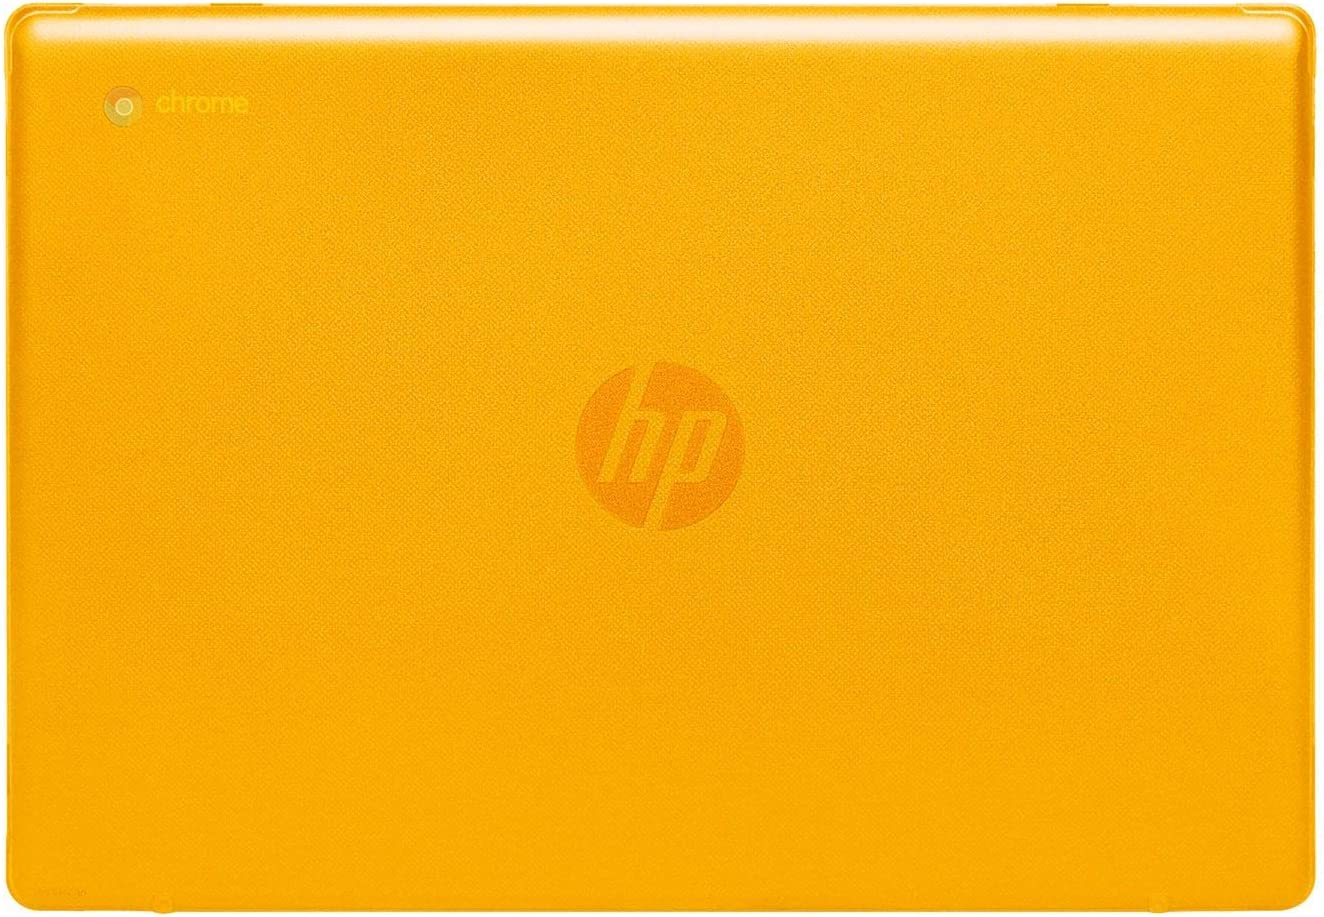 "mCover Hard Shell Case for 2020 14"" HP Chromebook 14 G6 (NOT Compatible with Older HP C14 G1 / G2 / G3 / G4/ G5 Series) laptops (Orange)"